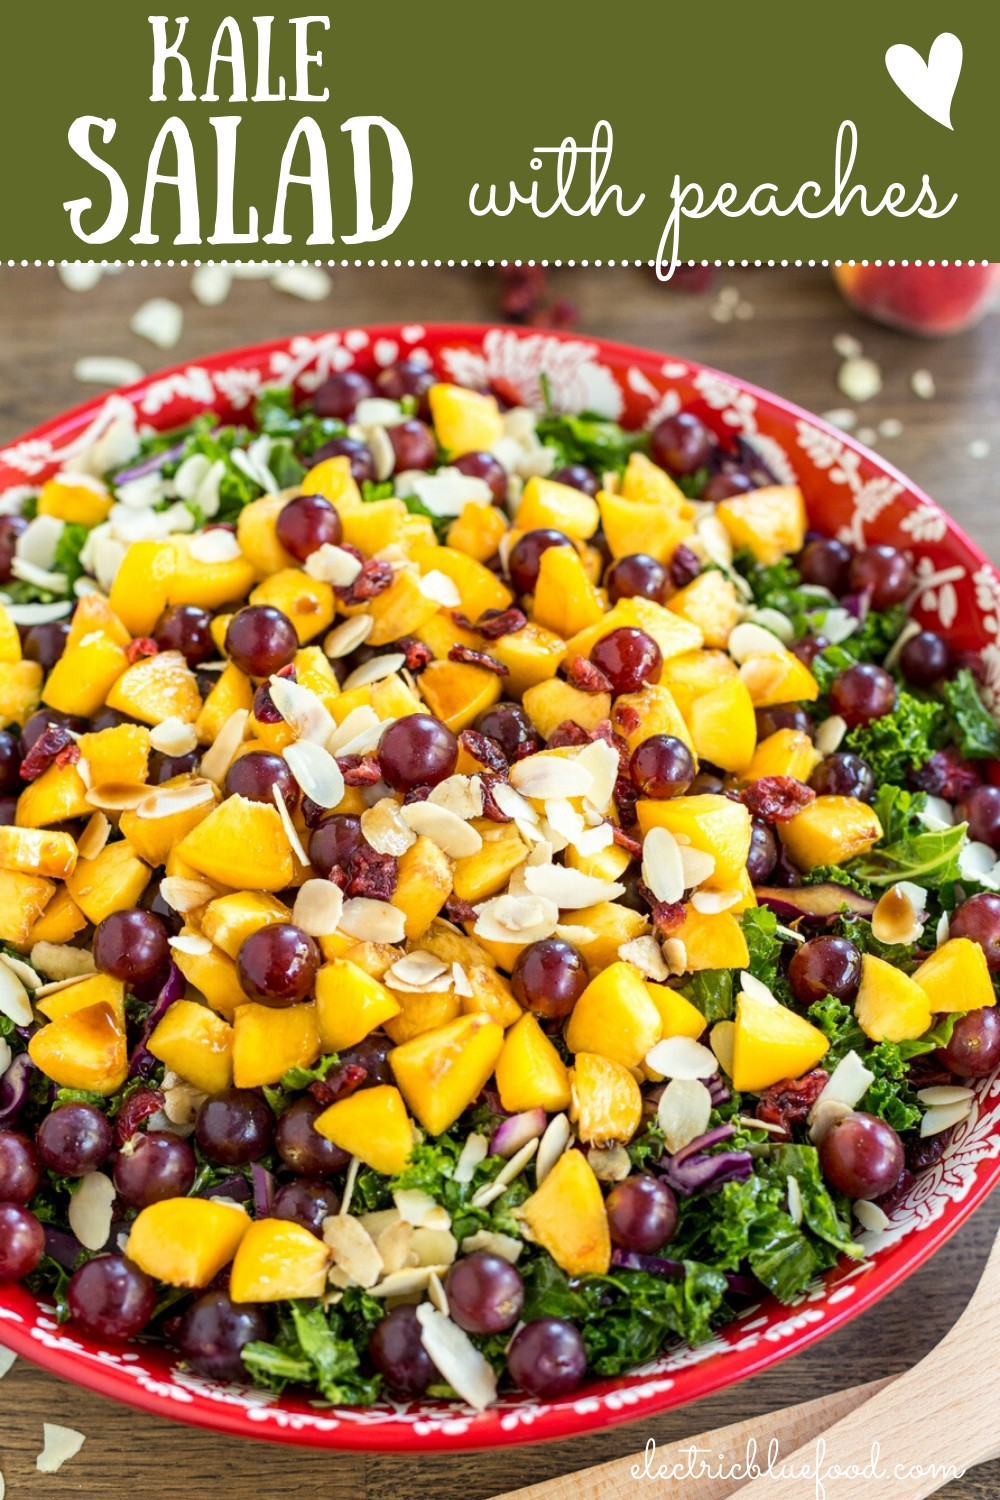 Fruity kale salad with peaches, grapes and almonds. With vegan balsamico dressing. A fresh and flavourful salad to enjoy in the summer.